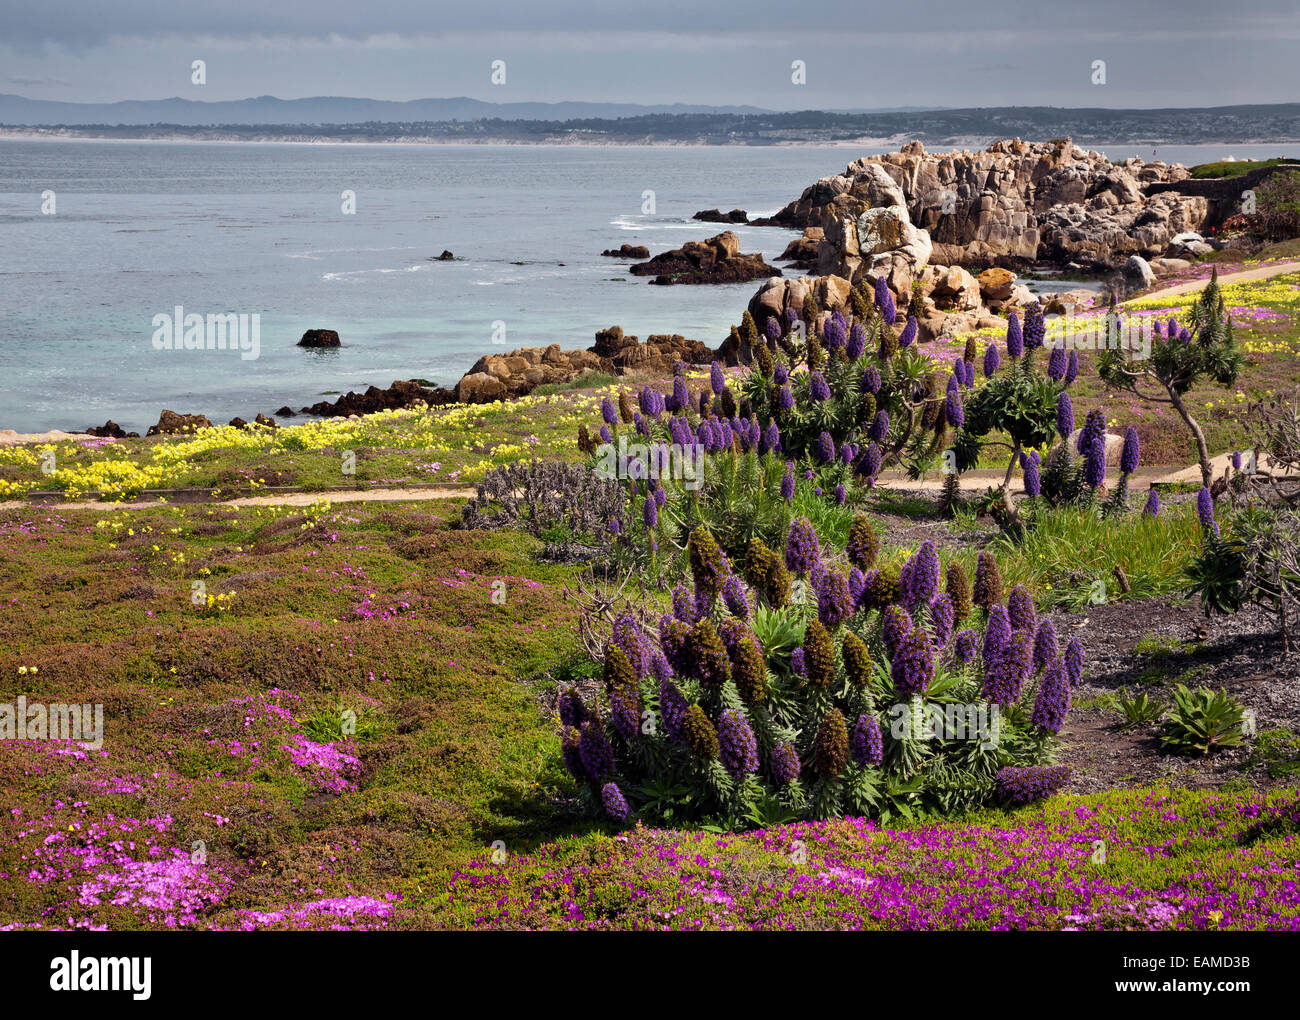 CA02412-00...CALIFORNIA - Colorful flowers blooming along the Monterey waterfront on Monterey Bay. - Stock Image